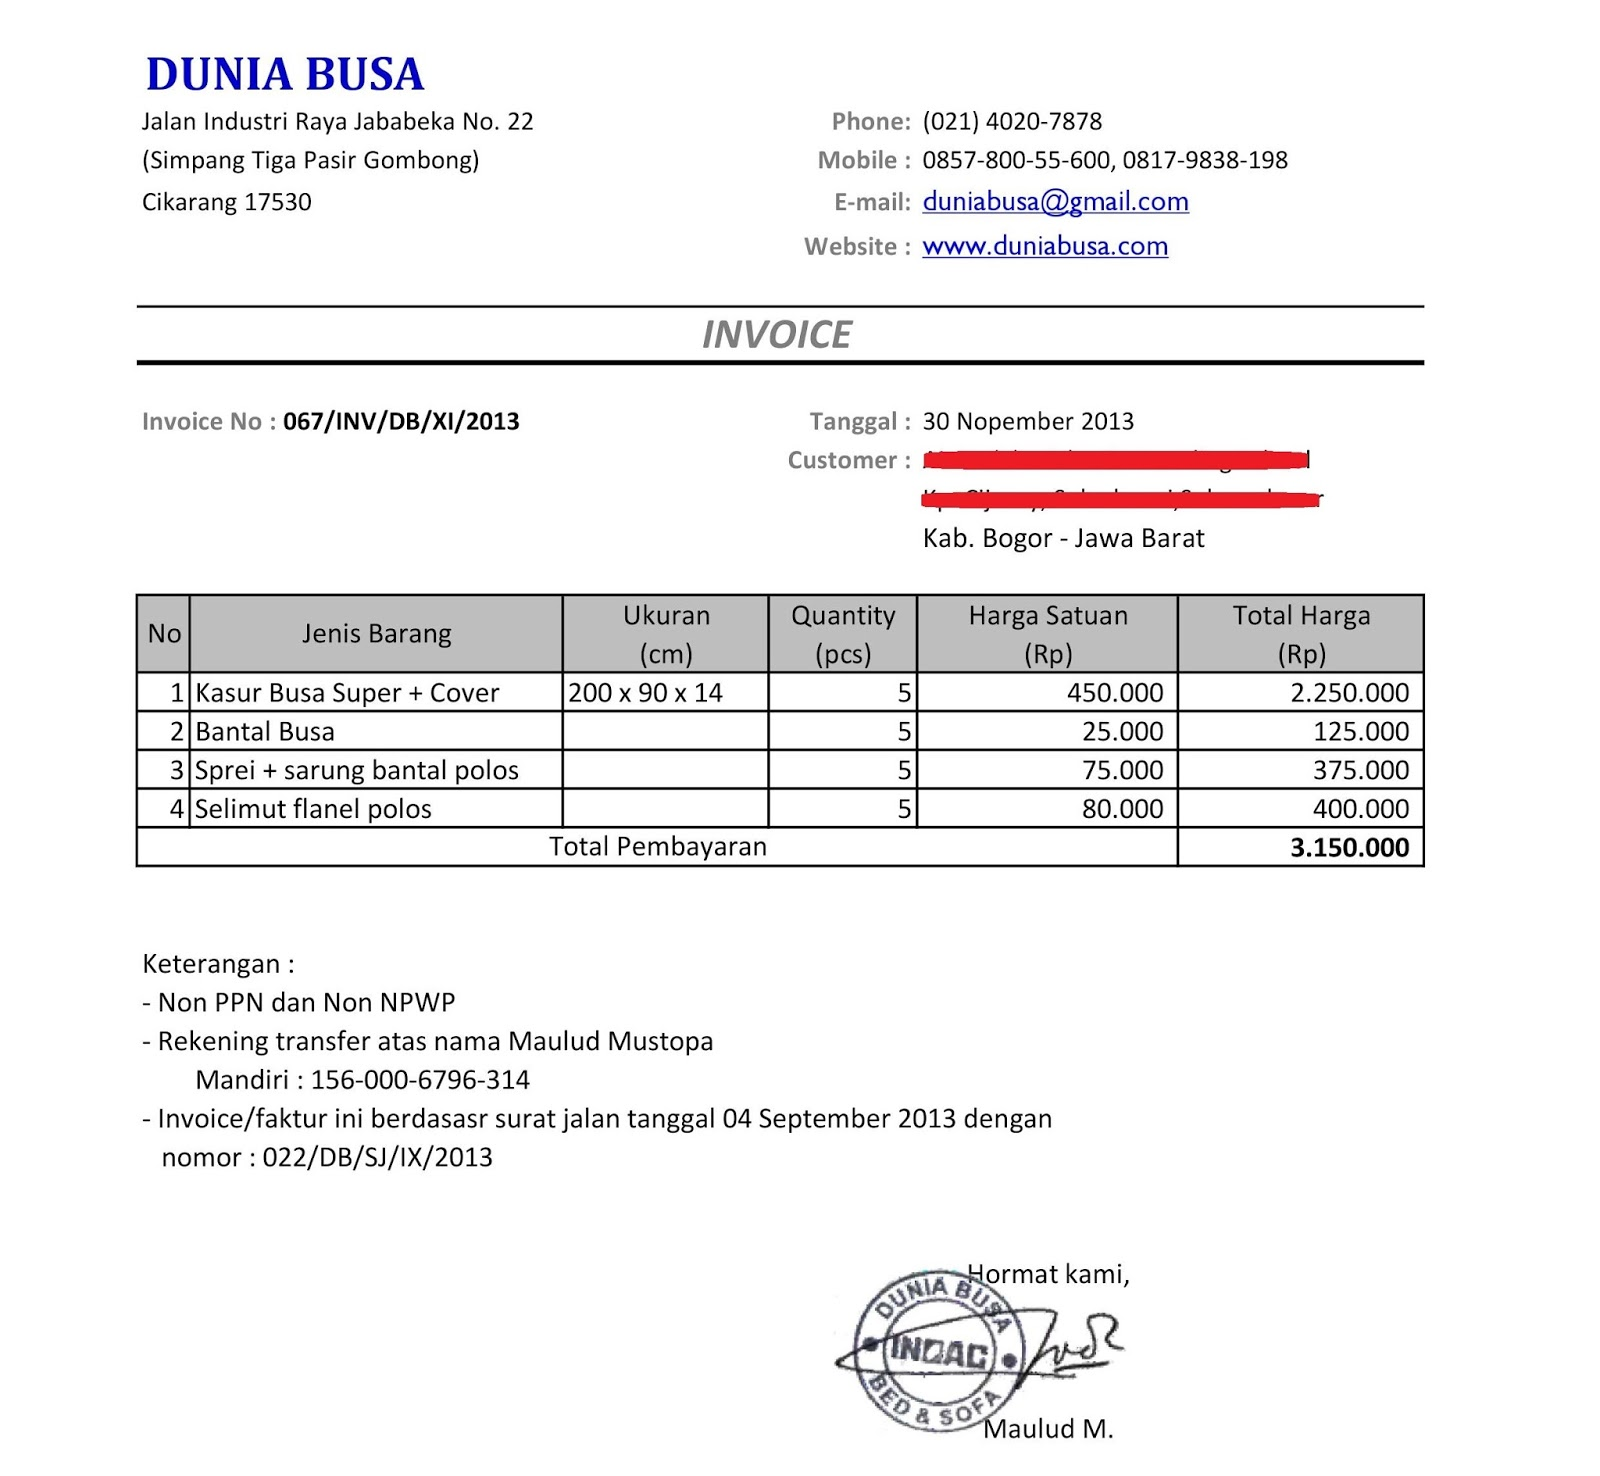 Aldiablosus  Sweet Free Invoice Online  Create Invoice Online  Invoice Template  With Exciting Contoh Format Invoice Atau Surat Tagihan  Brankas Arsip  Free Invoice Online With Enchanting Best Android Invoice App Also Gmc Sierra Invoice Price In Addition Invoice Financing Definition And What Is The Invoice Price For A Car As Well As Make My Own Invoice Additionally Invoice Form Word From Sklepco With Aldiablosus  Exciting Free Invoice Online  Create Invoice Online  Invoice Template  With Enchanting Contoh Format Invoice Atau Surat Tagihan  Brankas Arsip  Free Invoice Online And Sweet Best Android Invoice App Also Gmc Sierra Invoice Price In Addition Invoice Financing Definition From Sklepco